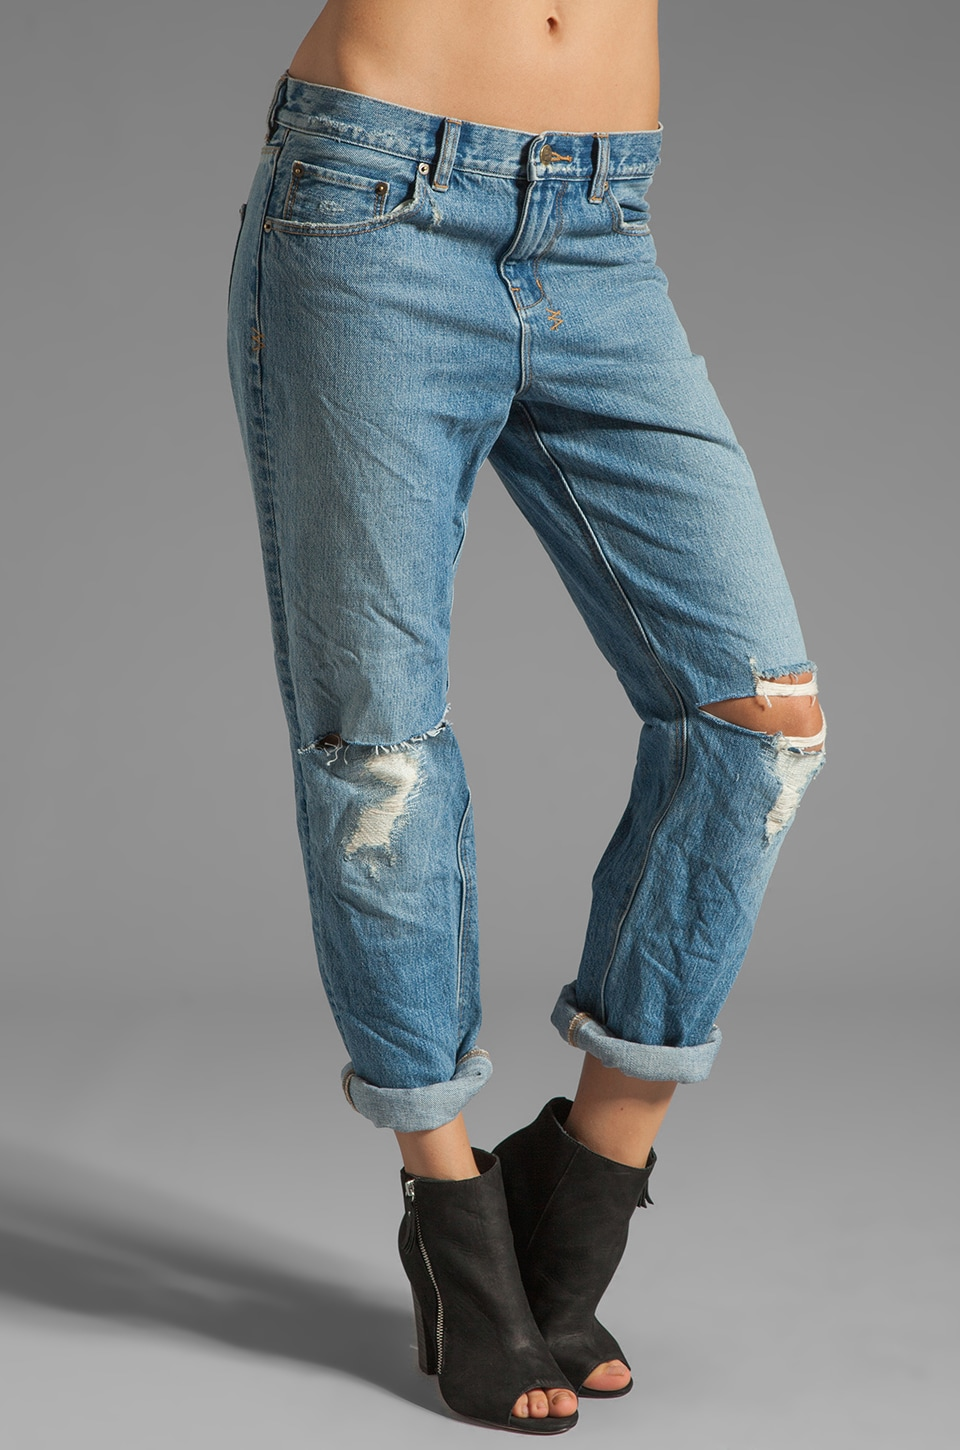 Ksubi Boyfriend Jean in Straight Up Trashed